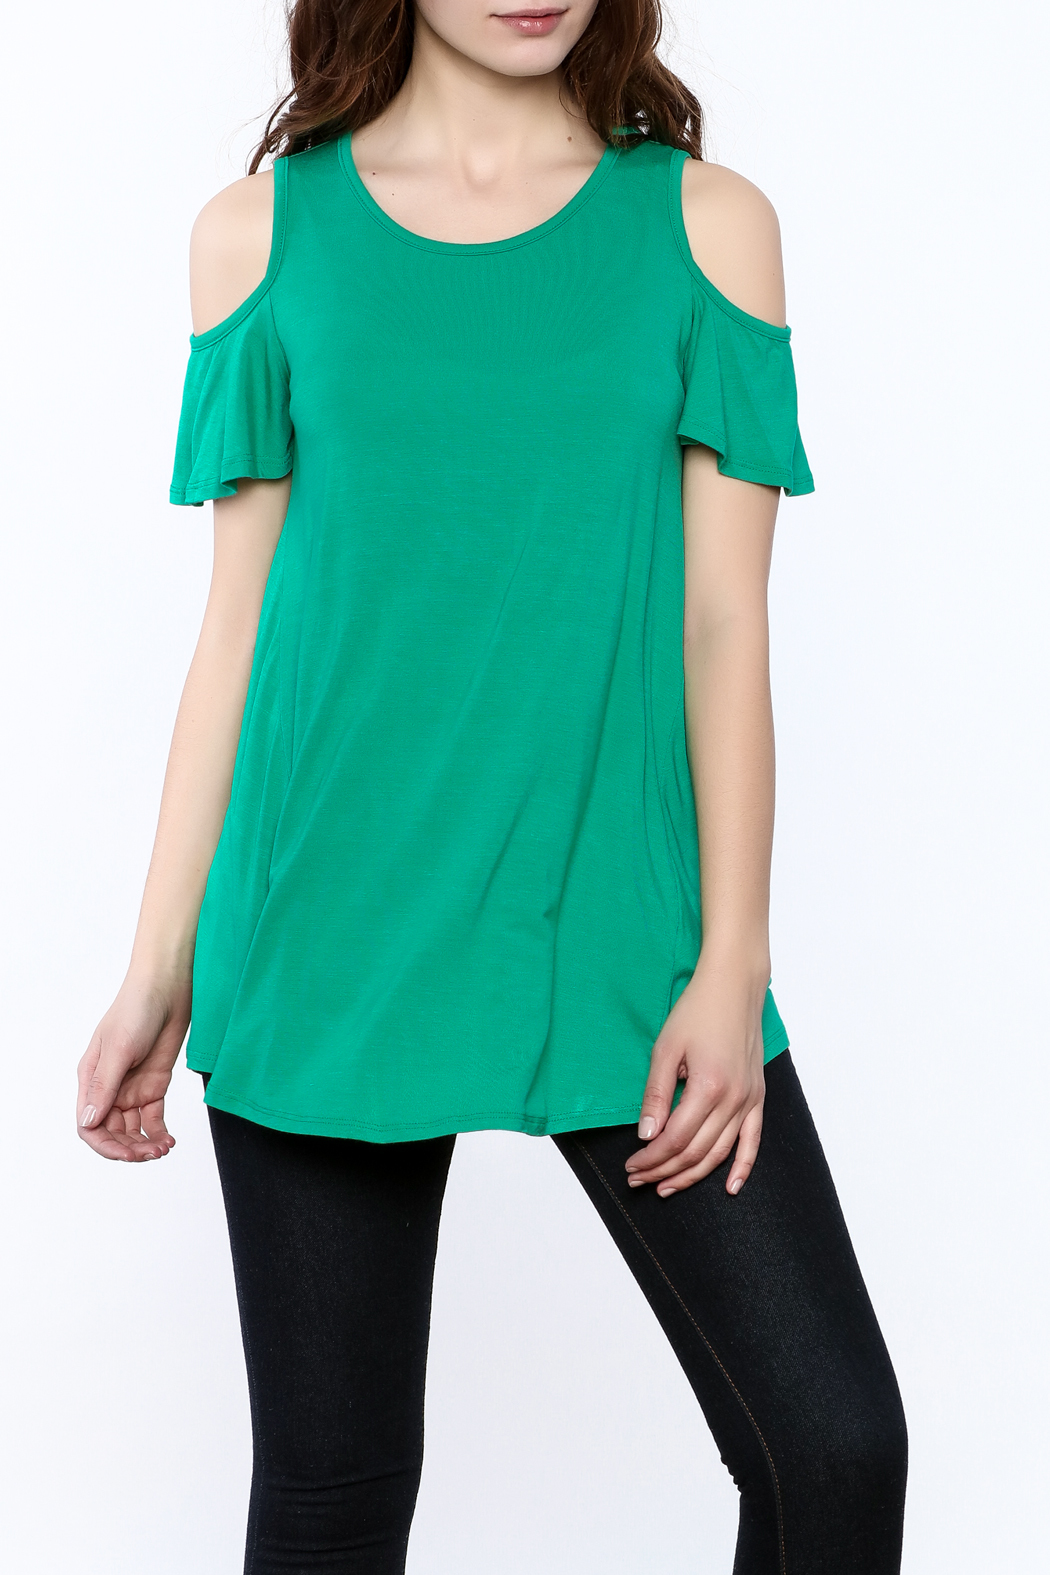 Reborn J Green Tunic Top - Main Image